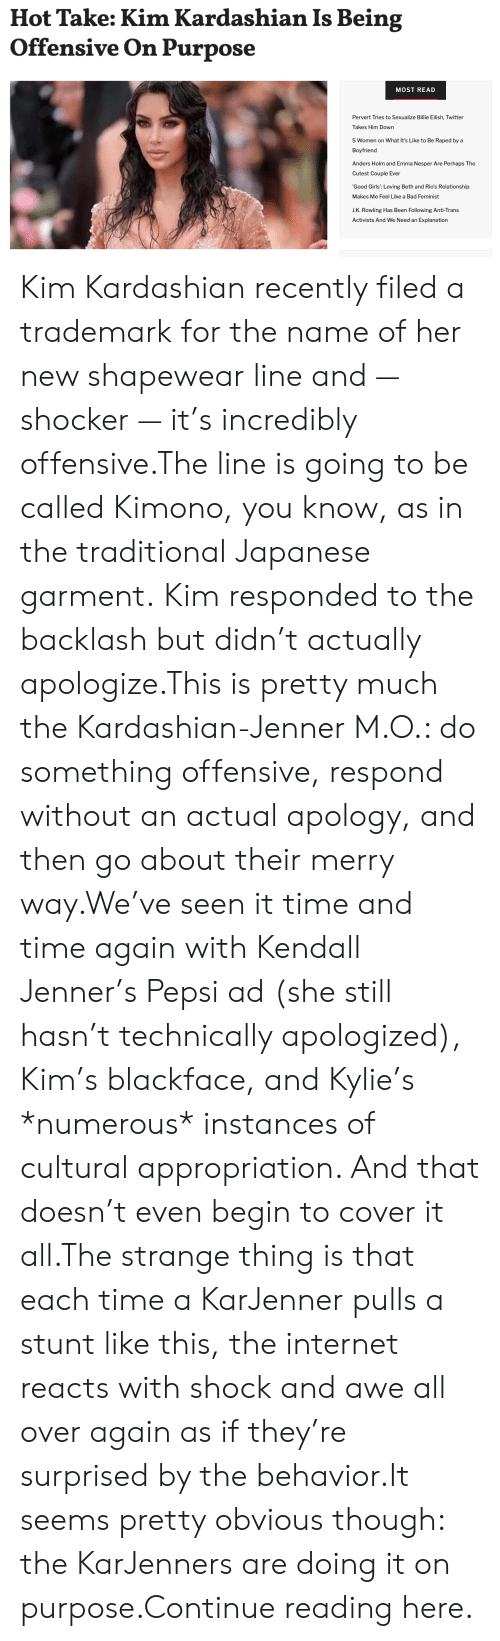 Bad, Girls, and Internet: Hot Take: Kim Kardashian Is Being  Offensive On Purpose  MOST READ  Pervert Tries to Sexualize Billie Eilish, Twitter  Takes Him Down  5 Women on What It's Like to Be Raped by a  Boyfriend  Anders Holm and Emma Nesper Are Perhaps The  Cutest Couple Ever  'Good Girls': Loving Beth and Rio's Relationship  Makes Me Feel Like a Bad Feminist  J.K. Rowling Has Been Following Anti-Trans  Activists And We Need an Explanation Kim Kardashian recently filed a trademark for the name of her new shapewear line and — shocker — it's incredibly offensive.The line is going to be called Kimono, you know, as in the traditional Japanese garment.Kim responded to the backlash but didn't actually apologize.This is pretty much the Kardashian-Jenner M.O.: do something offensive, respond without an actual apology, and then go about their merry way.We've seen it time and time again with Kendall Jenner's Pepsi ad (she still hasn't technically apologized), Kim's blackface, and Kylie's *numerous* instances of cultural appropriation. And that doesn't even begin to cover it all.The strange thing is that each time a KarJenner pulls a stunt like this, the internet reacts with shock and awe all over again as if they're surprised by the behavior.It seems pretty obvious though: the KarJenners are doing it on purpose.Continue reading here.